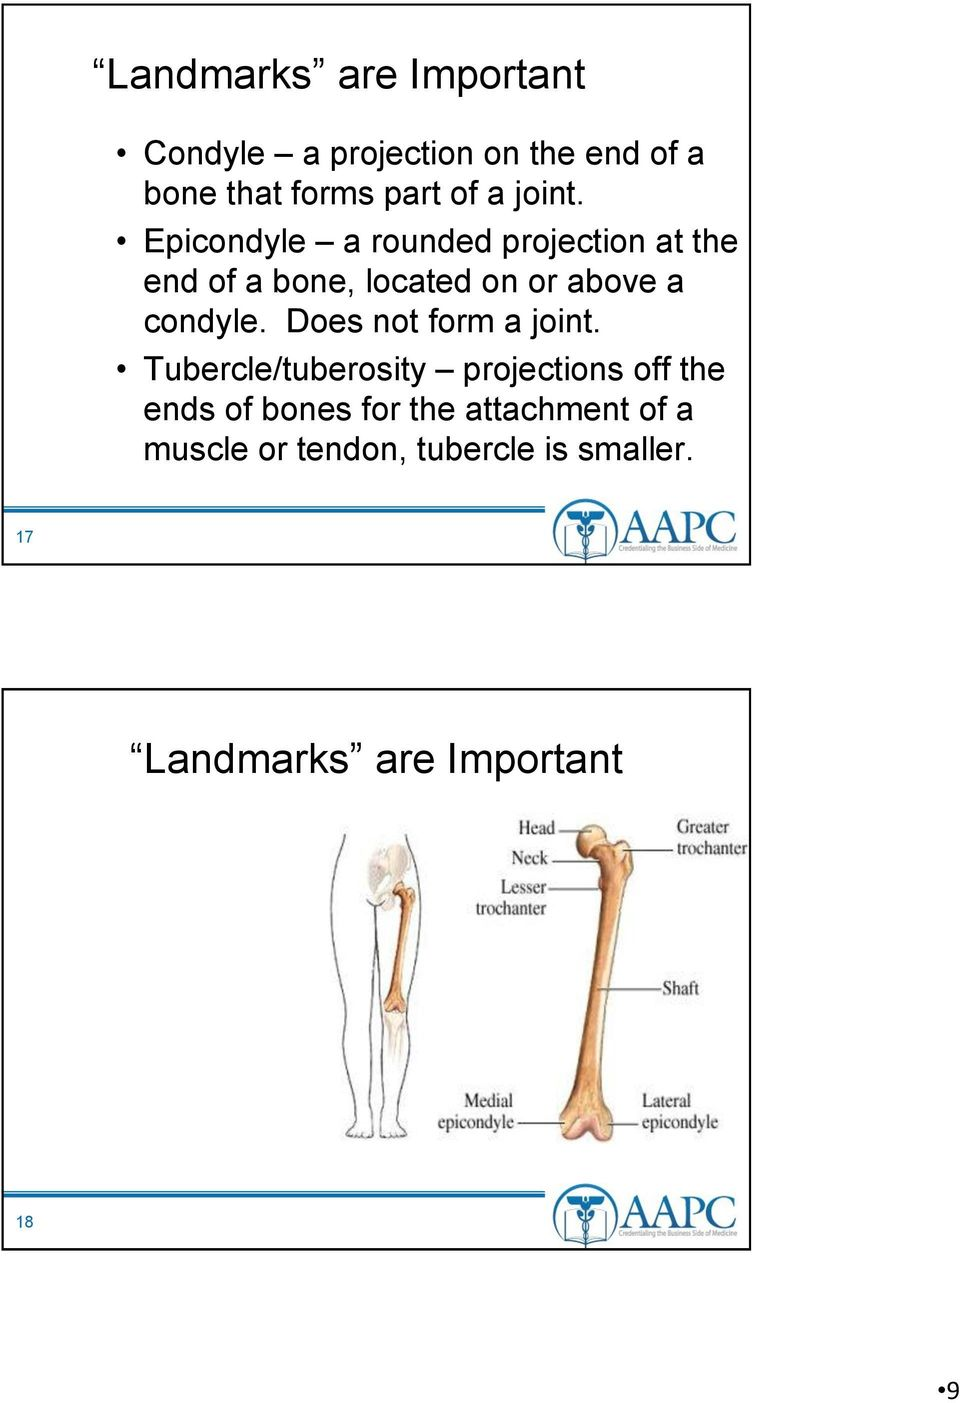 Epicondyle a rounded projection at the end of a bone, located on or above a condyle.